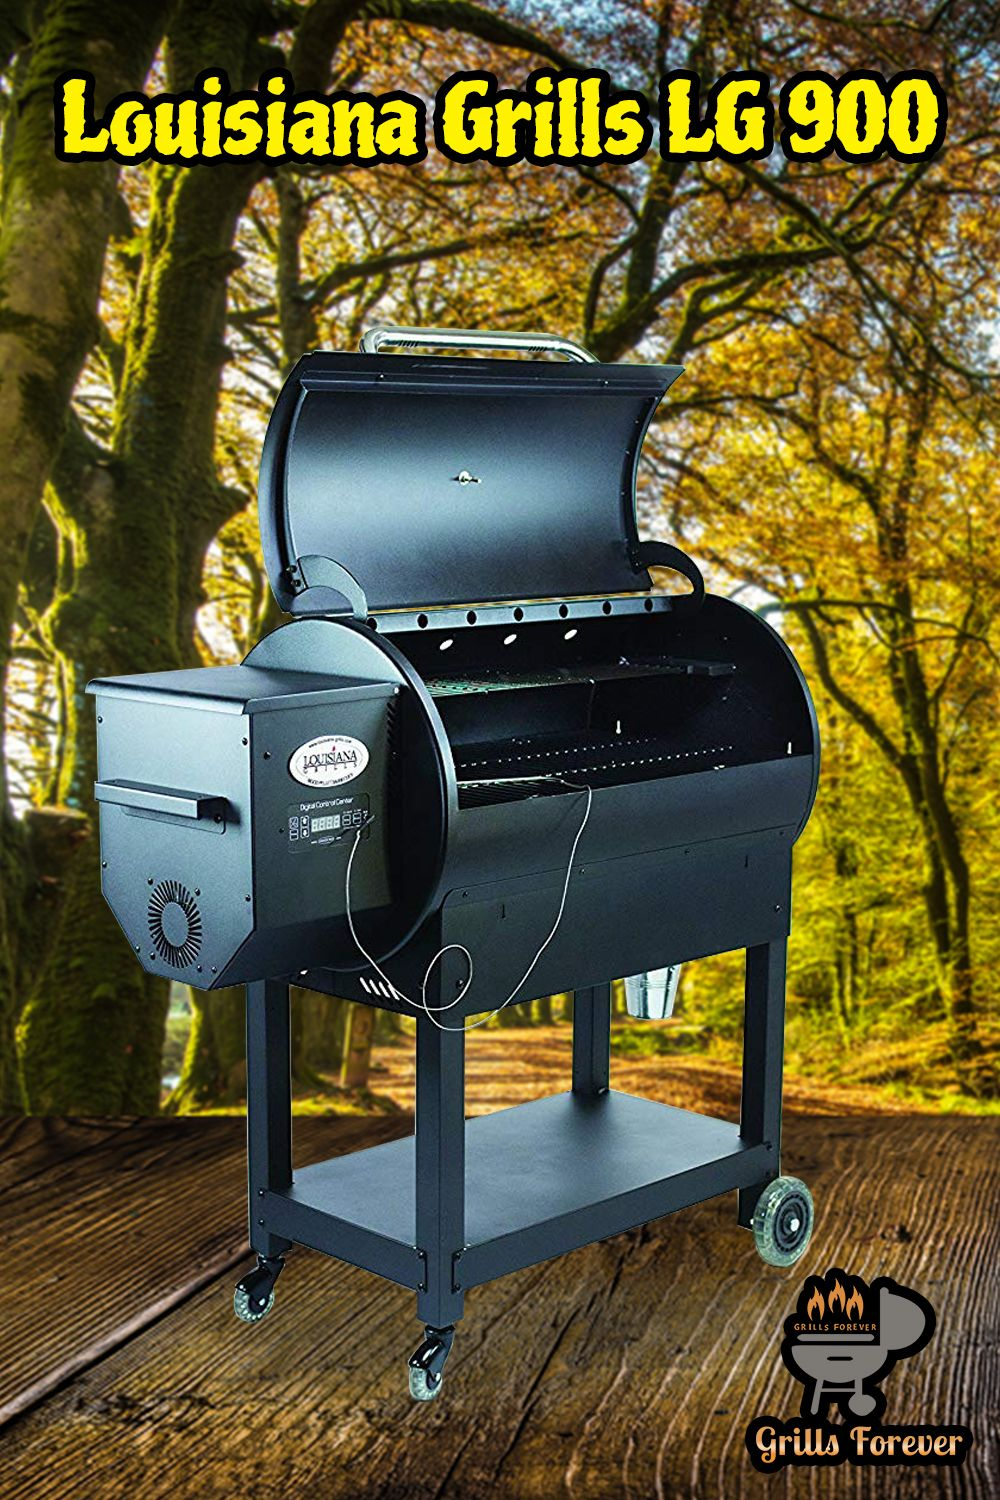 Louisiana Grills Lg 900 Review Nov 2018 Grills Forever Louisiana Grills Grilling Louisiana